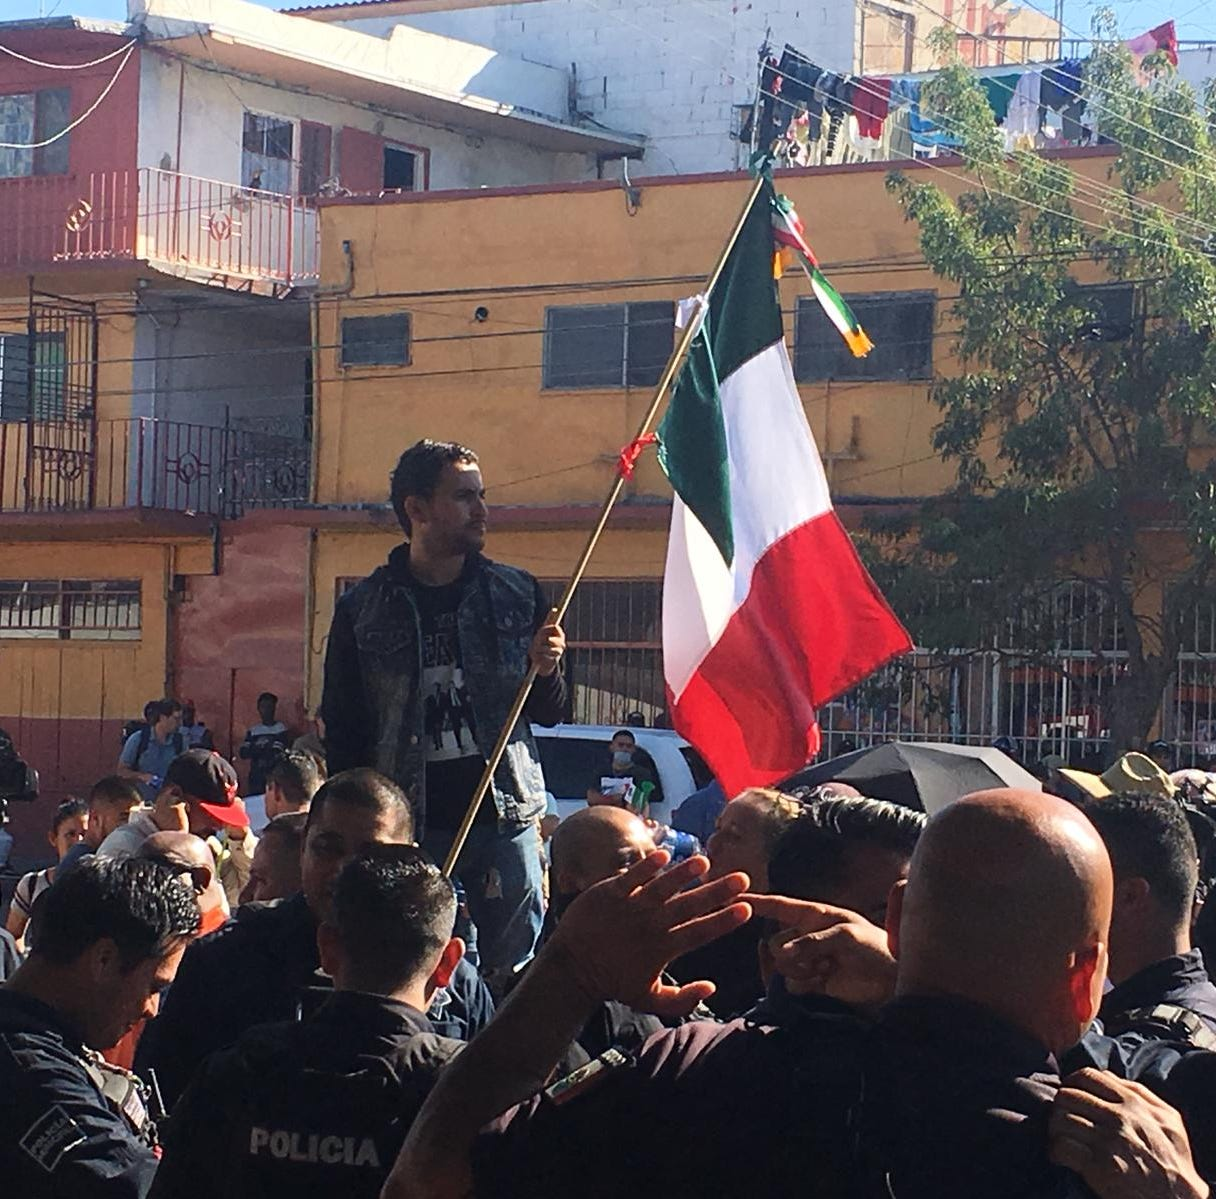 Protesters march against migrant caravan in Tijuana; Police respond with riot gear